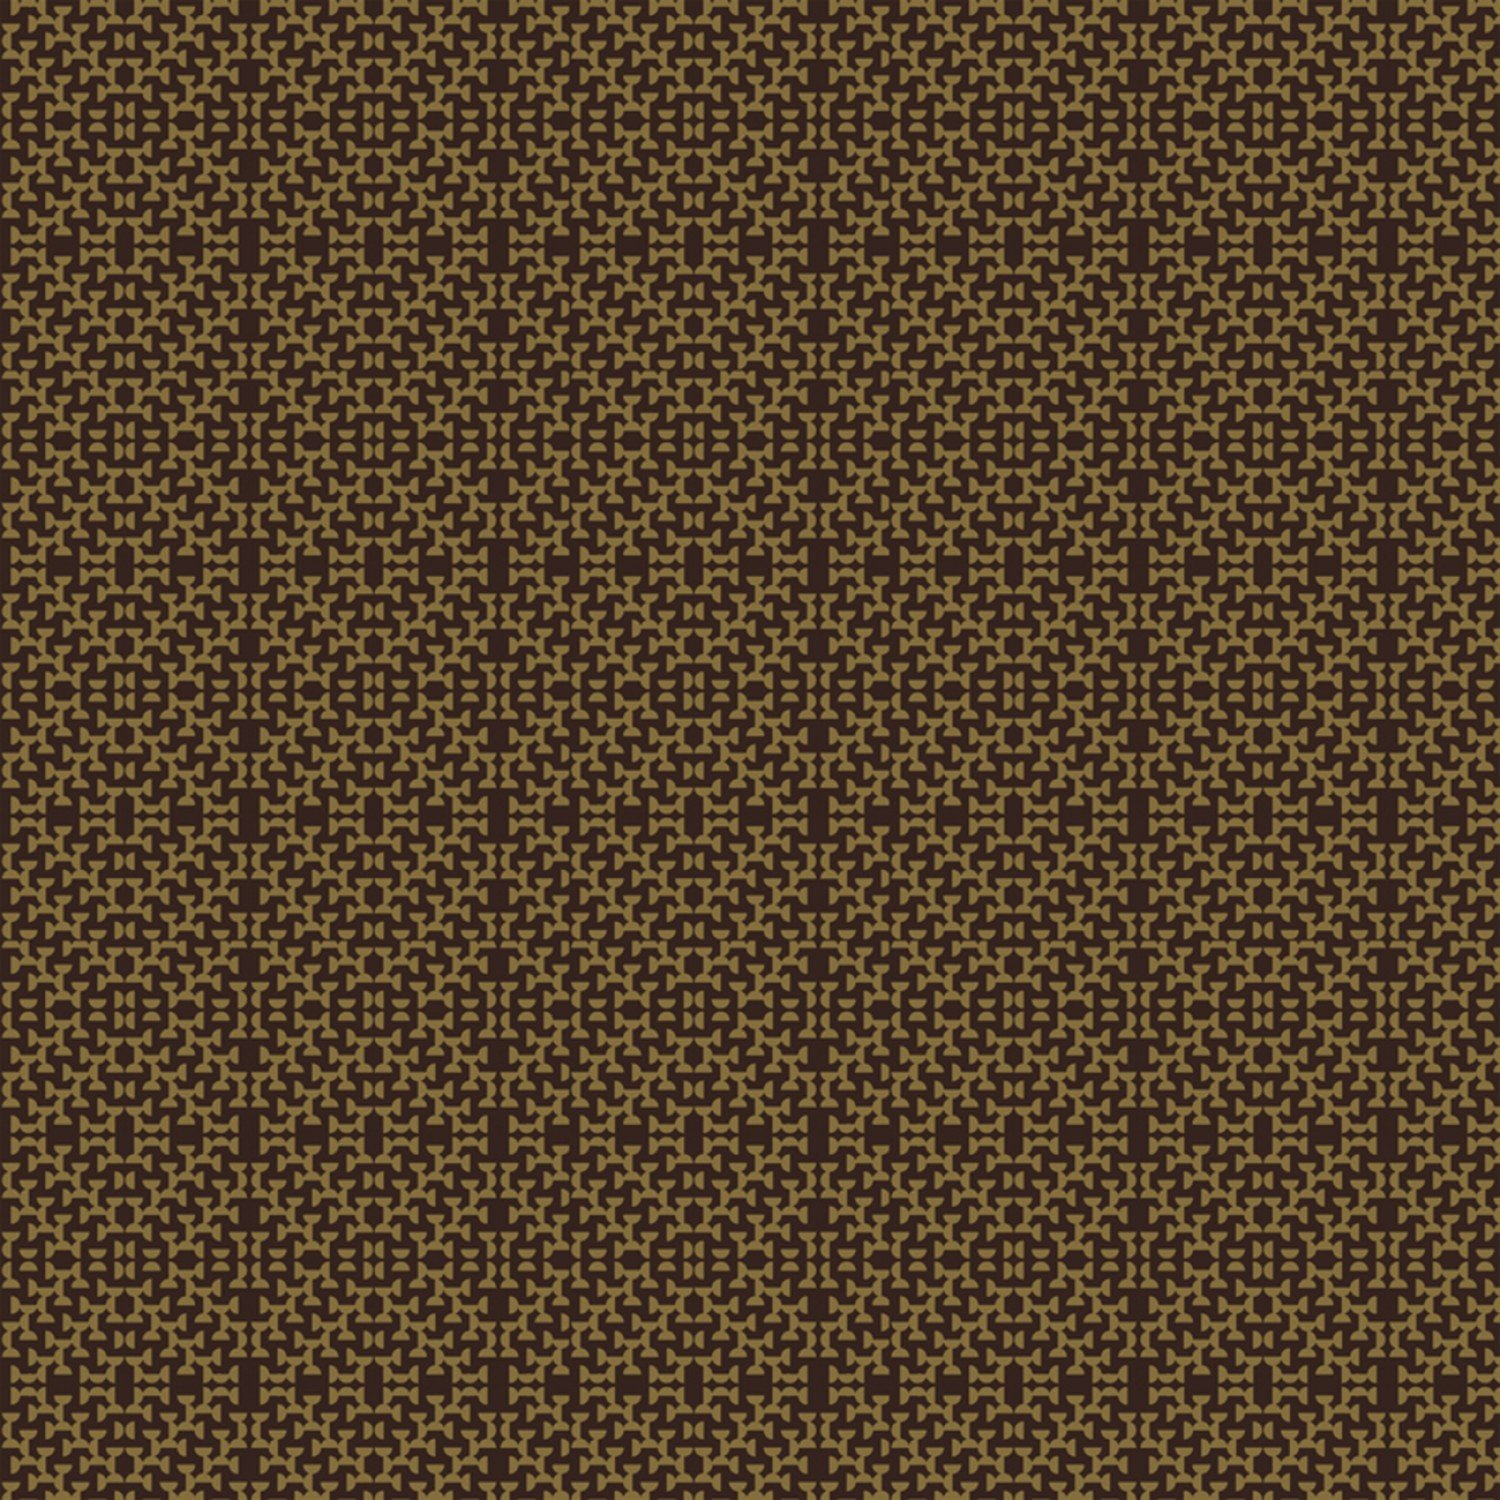 Pottery 51580-7  by Dale Allen Rowse for Windham Fabrics PricedSold by the Half Yard